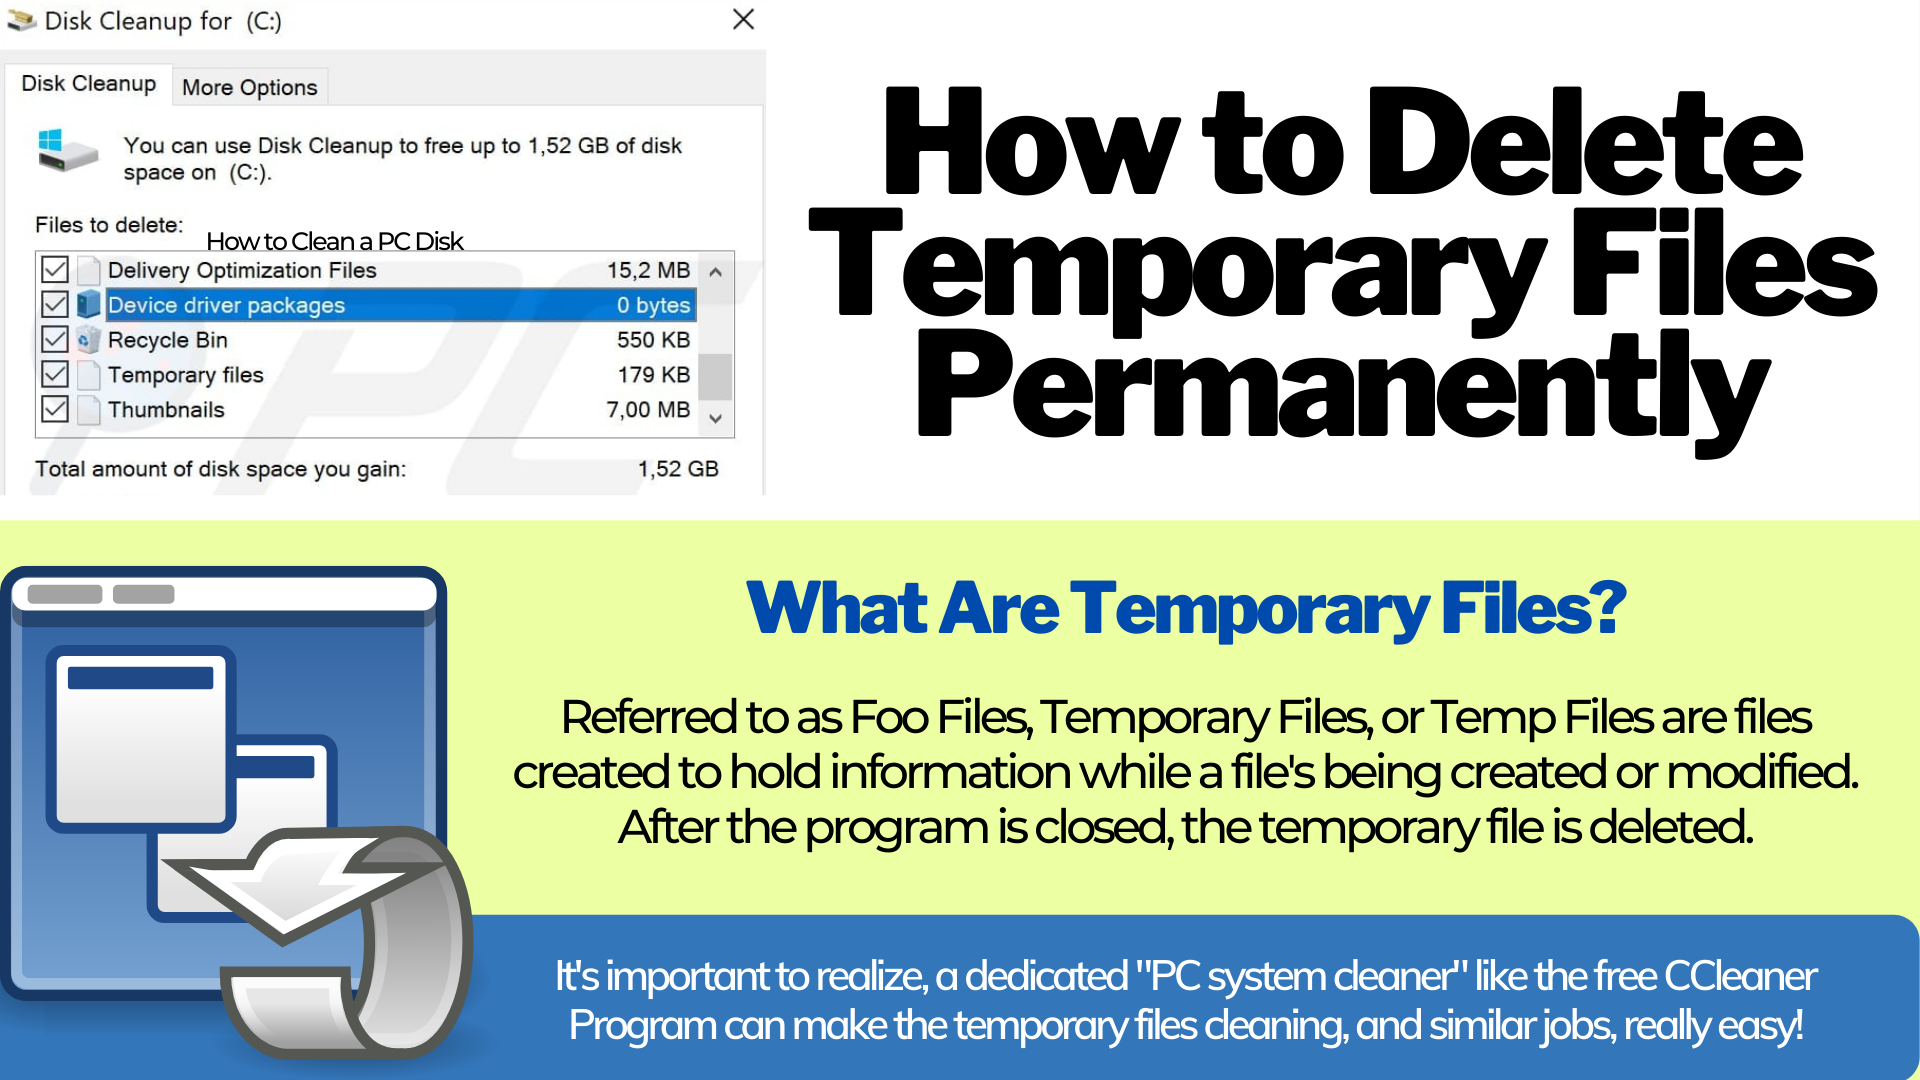 What are Temporary Files?